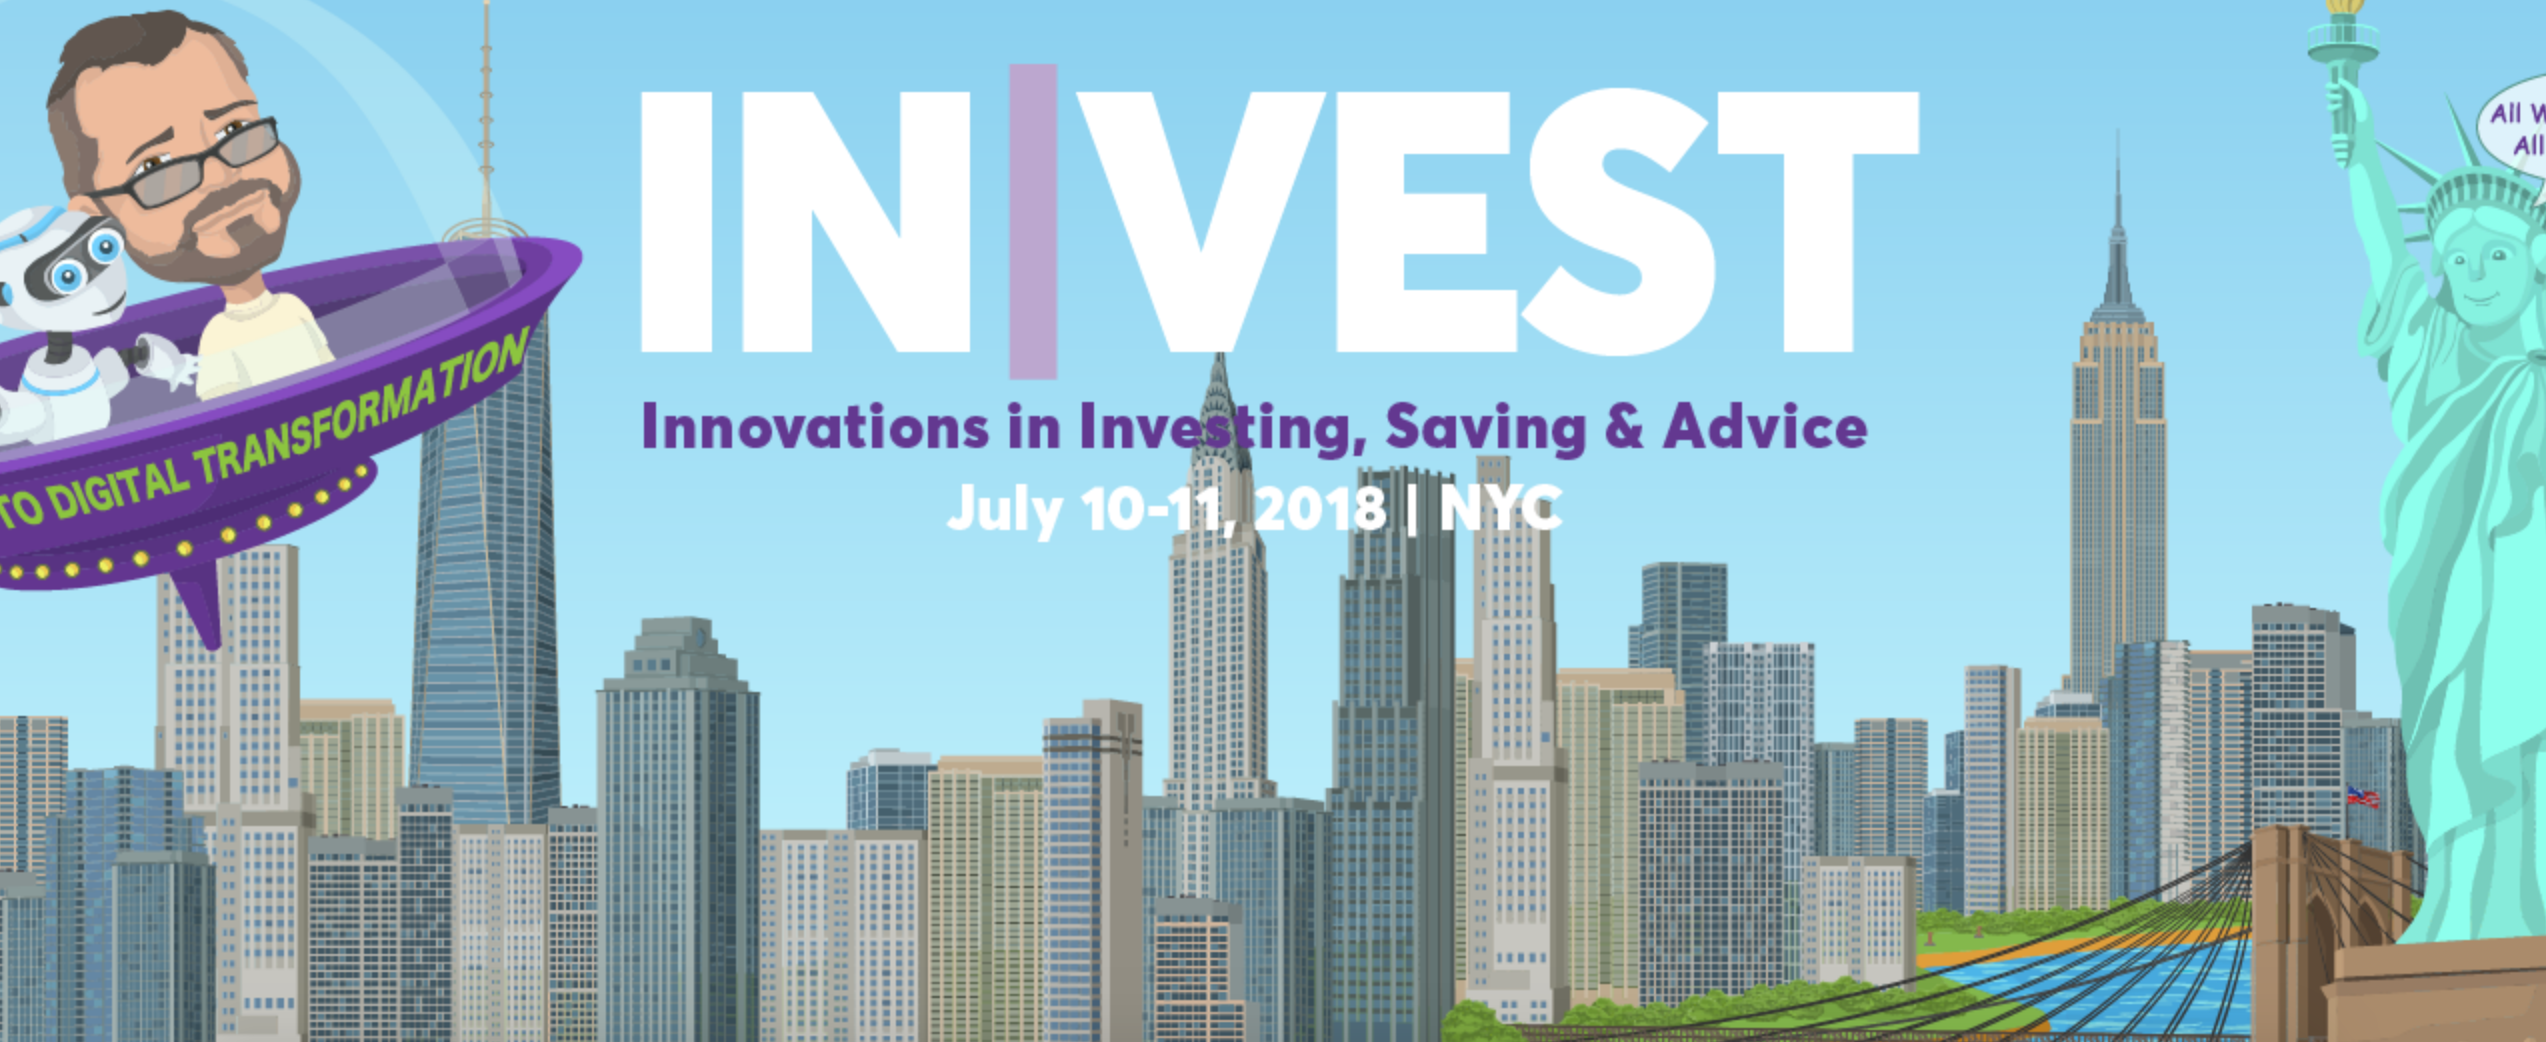 invest 2018, financial conferences to attend